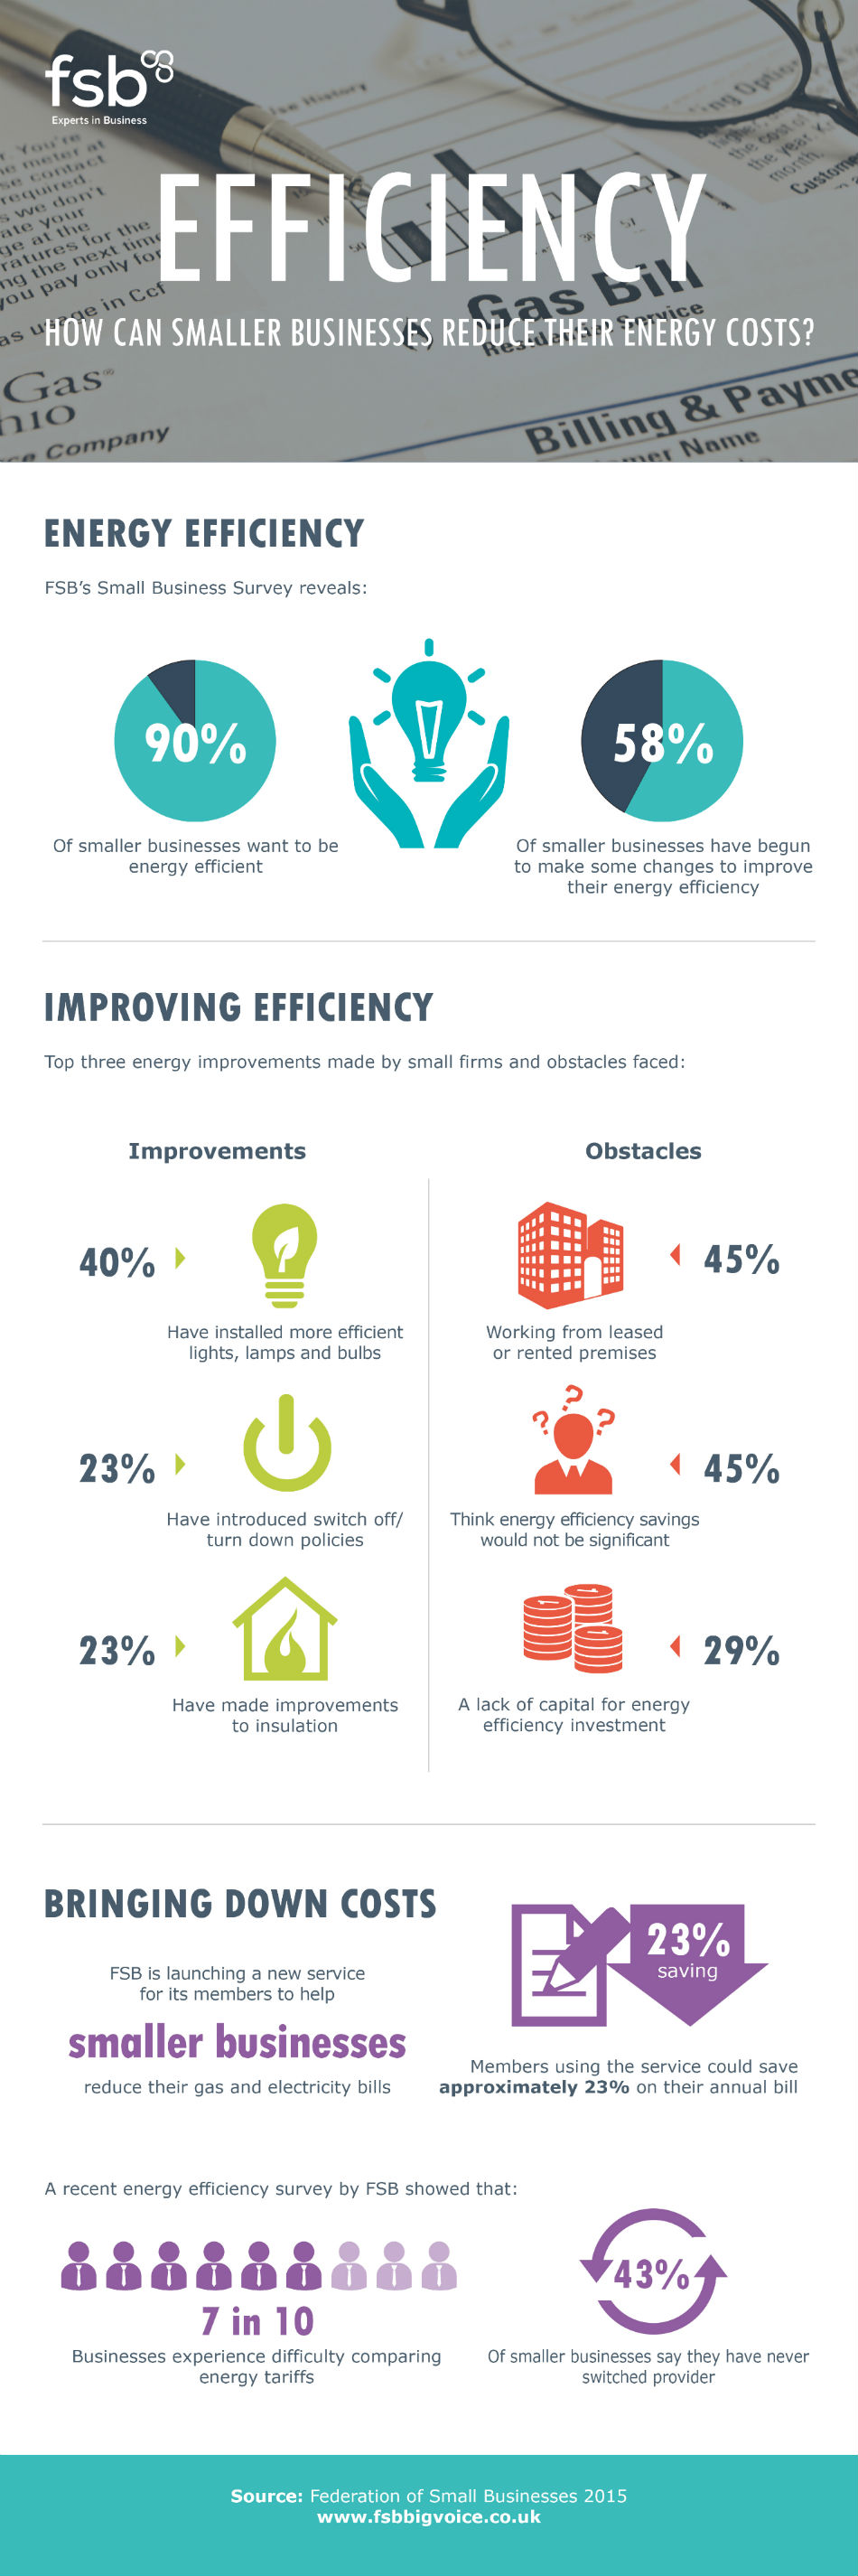 20151201 Energy Efficiency infographic FINAL